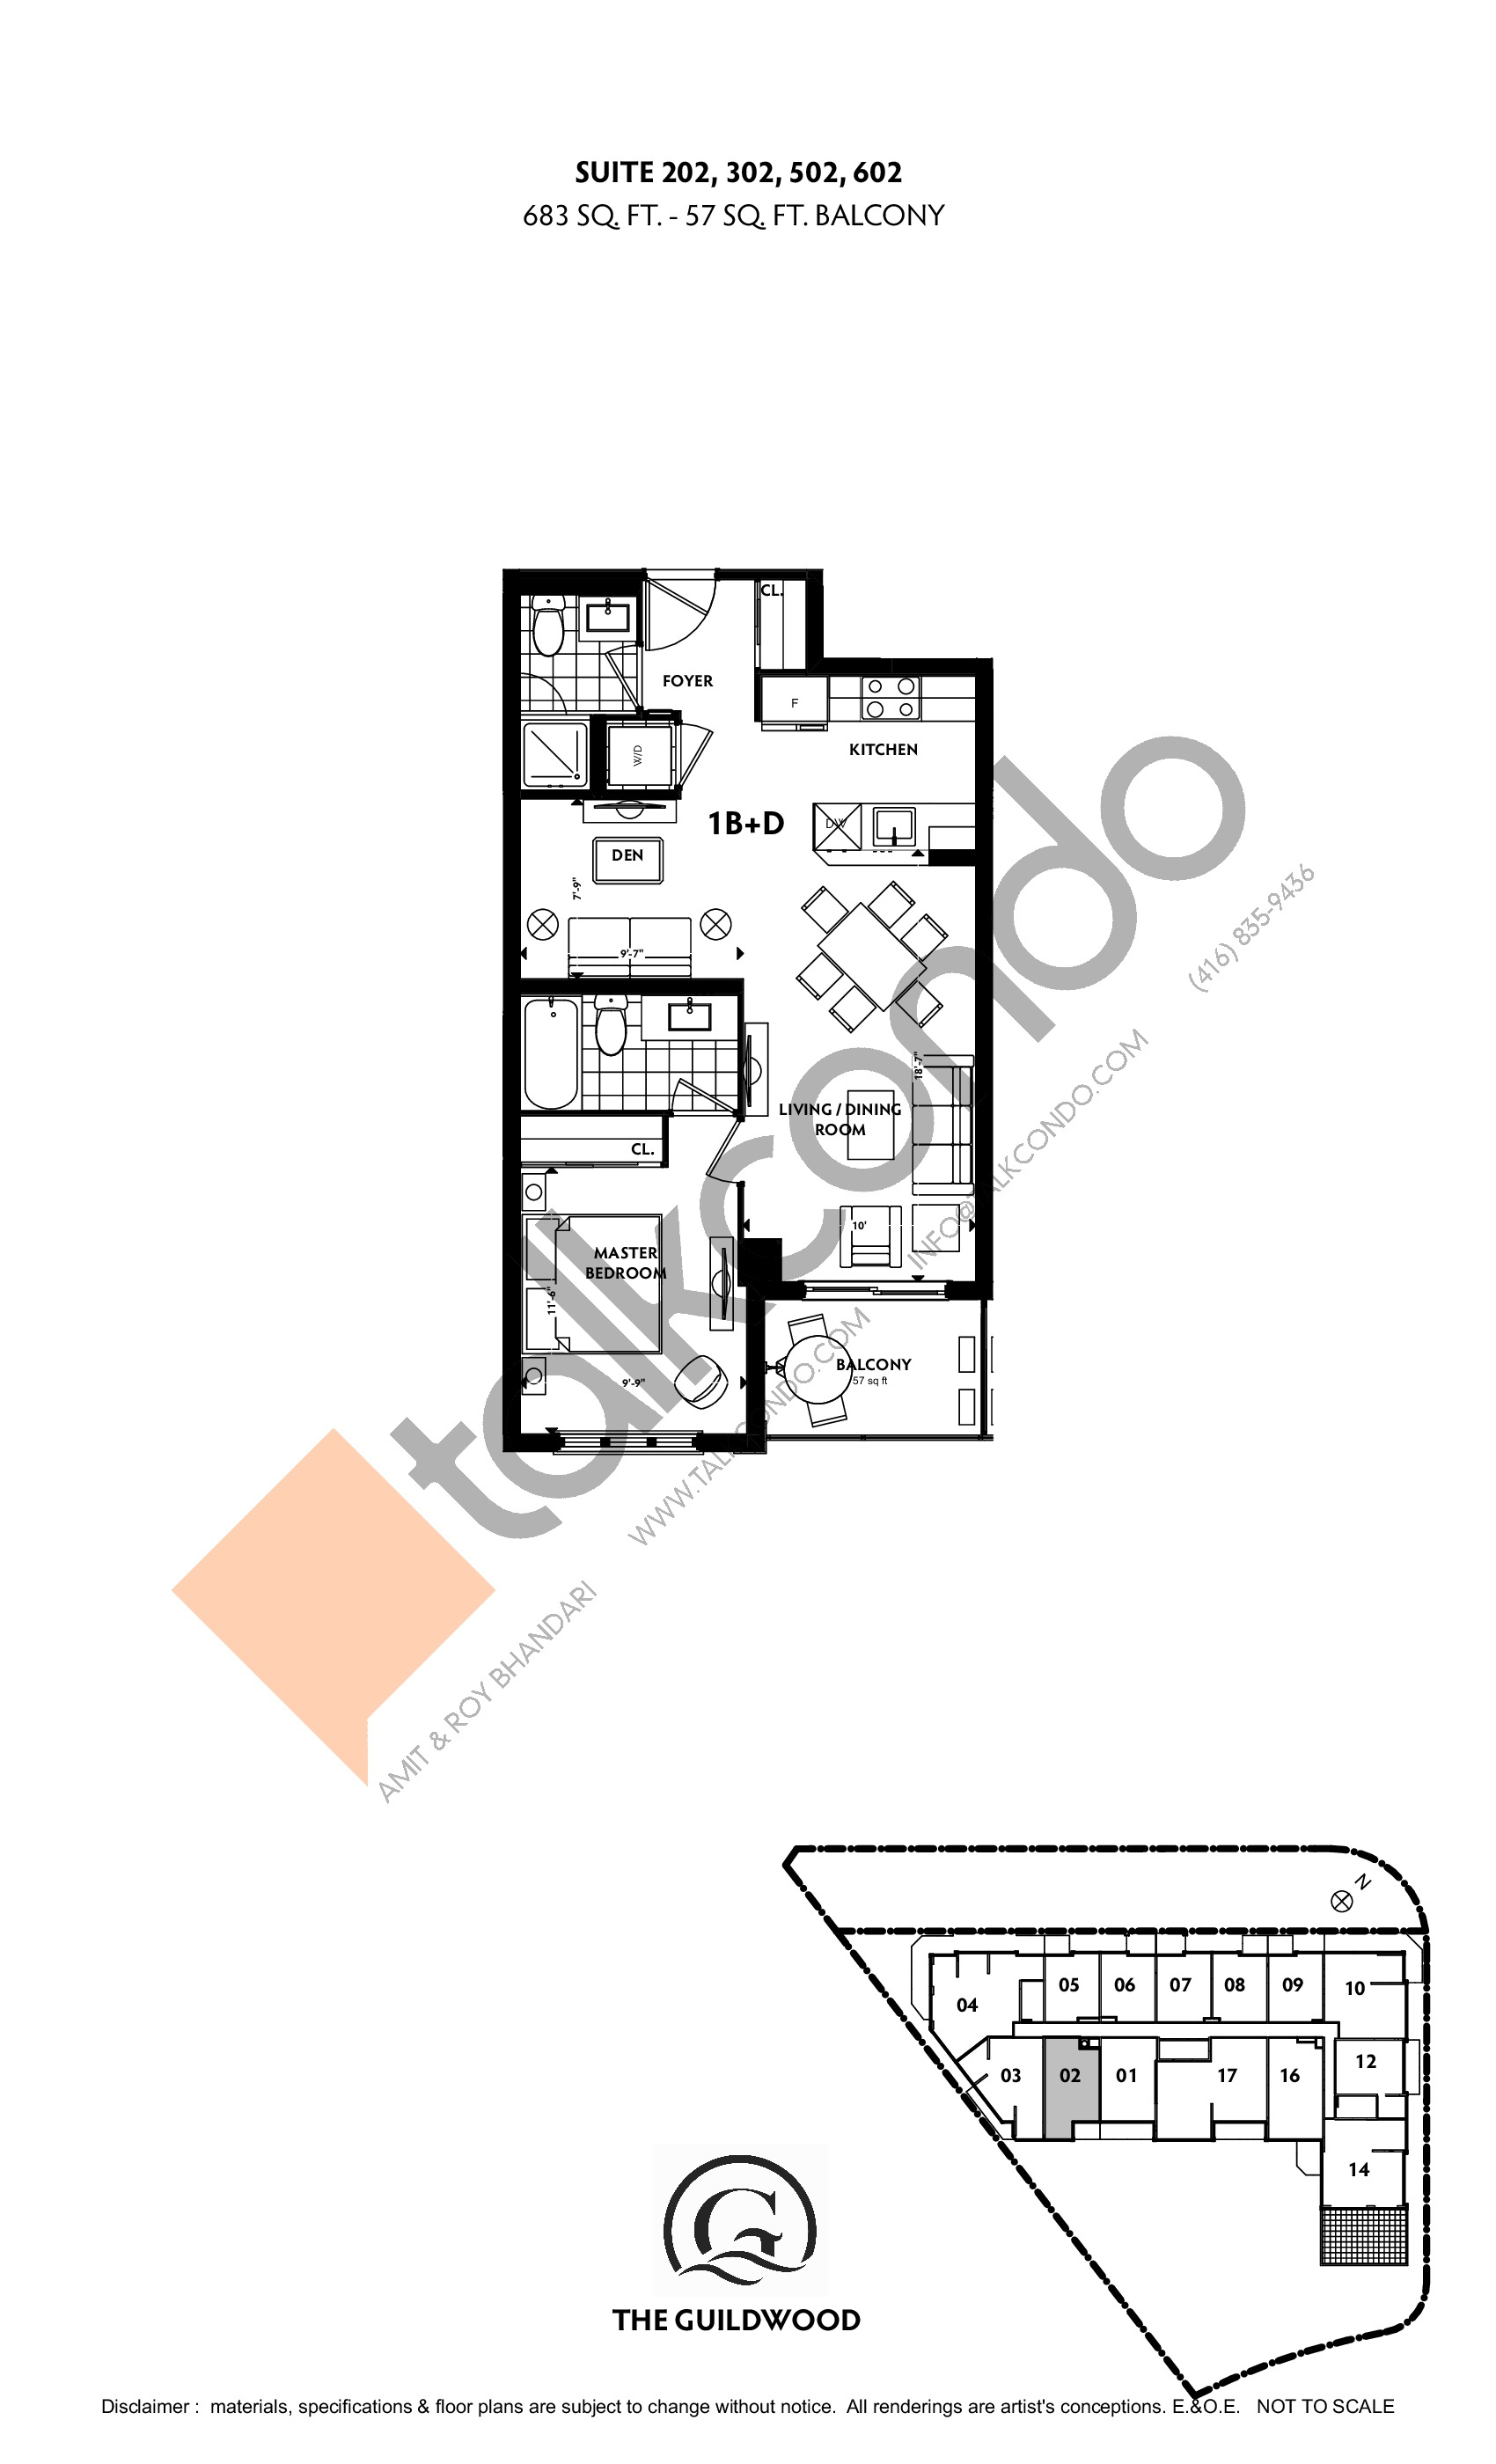 Suite 202, 302, 502, 602 Floor Plan at Guildwood Condos - 683 sq.ft